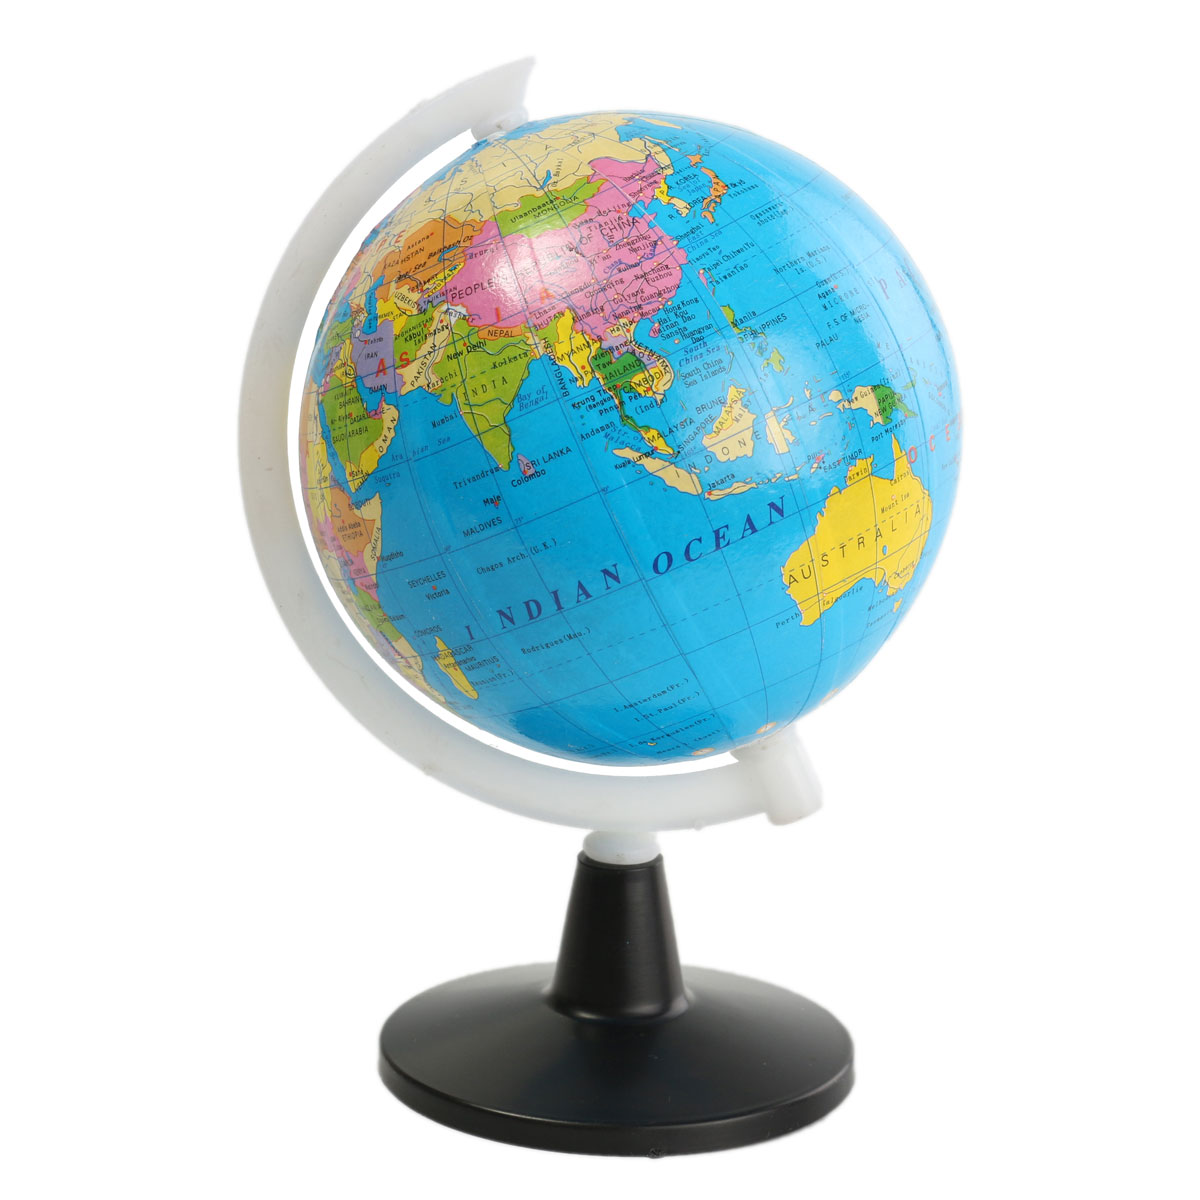 8.5cm World Globe Atlas Map With Swivel Stand Geography Educational Toy Home Decor Gift